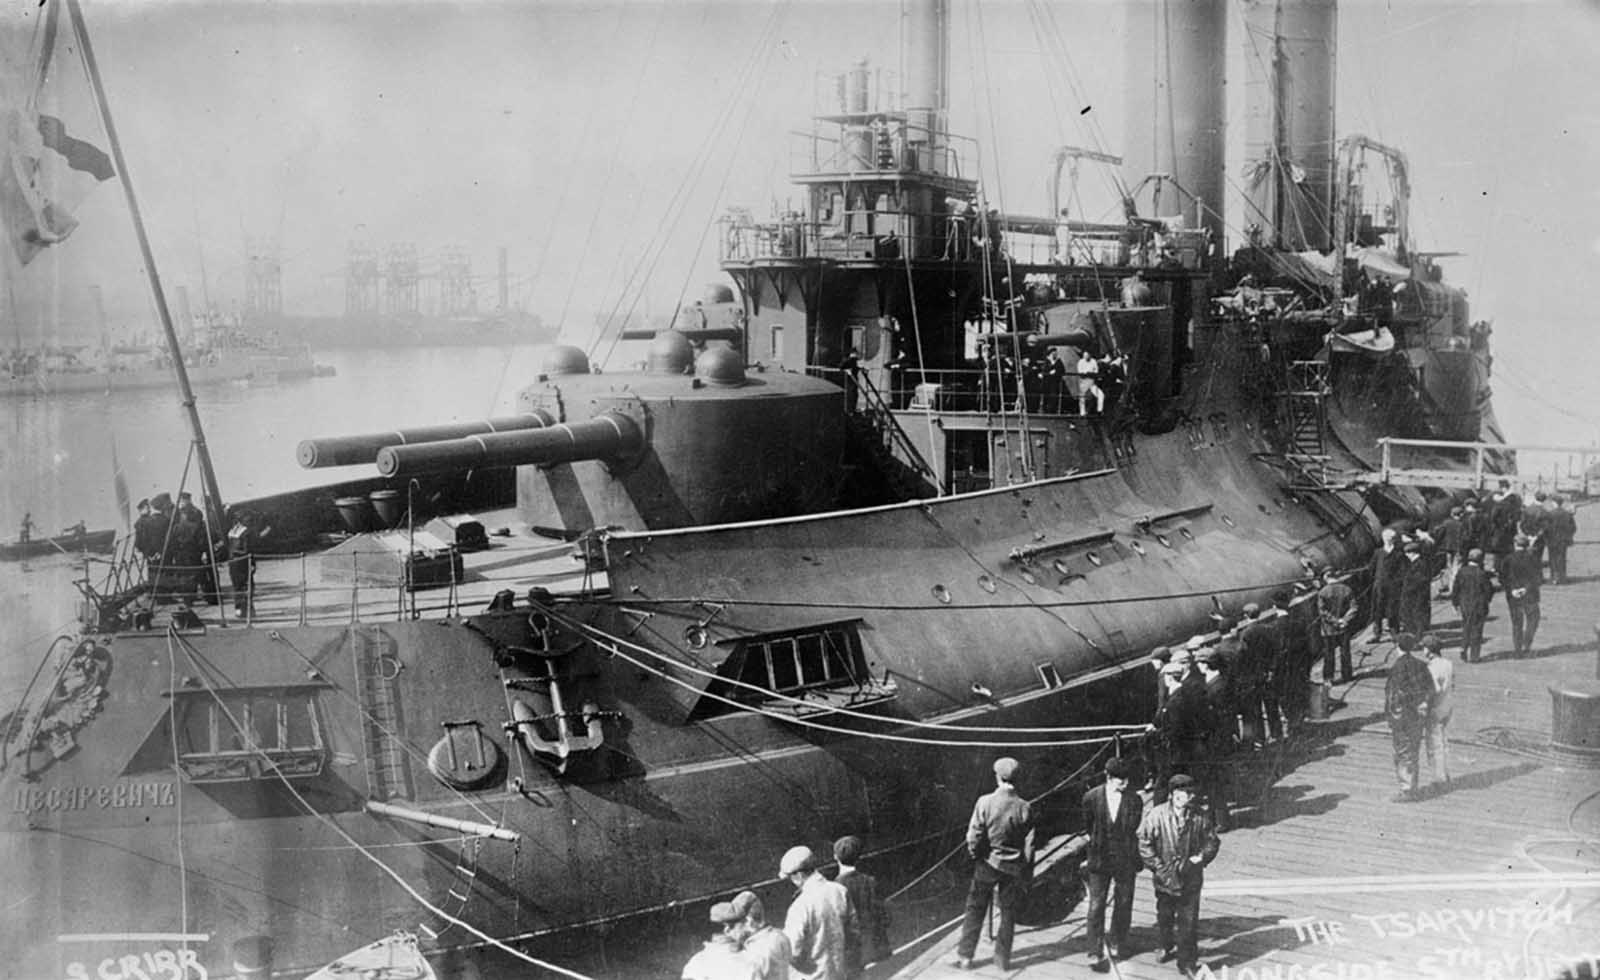 Russian battleship Tsesarevich, a pre-dreadnought battleship of the Imperial Russian Navy, docked, ca. 1915.